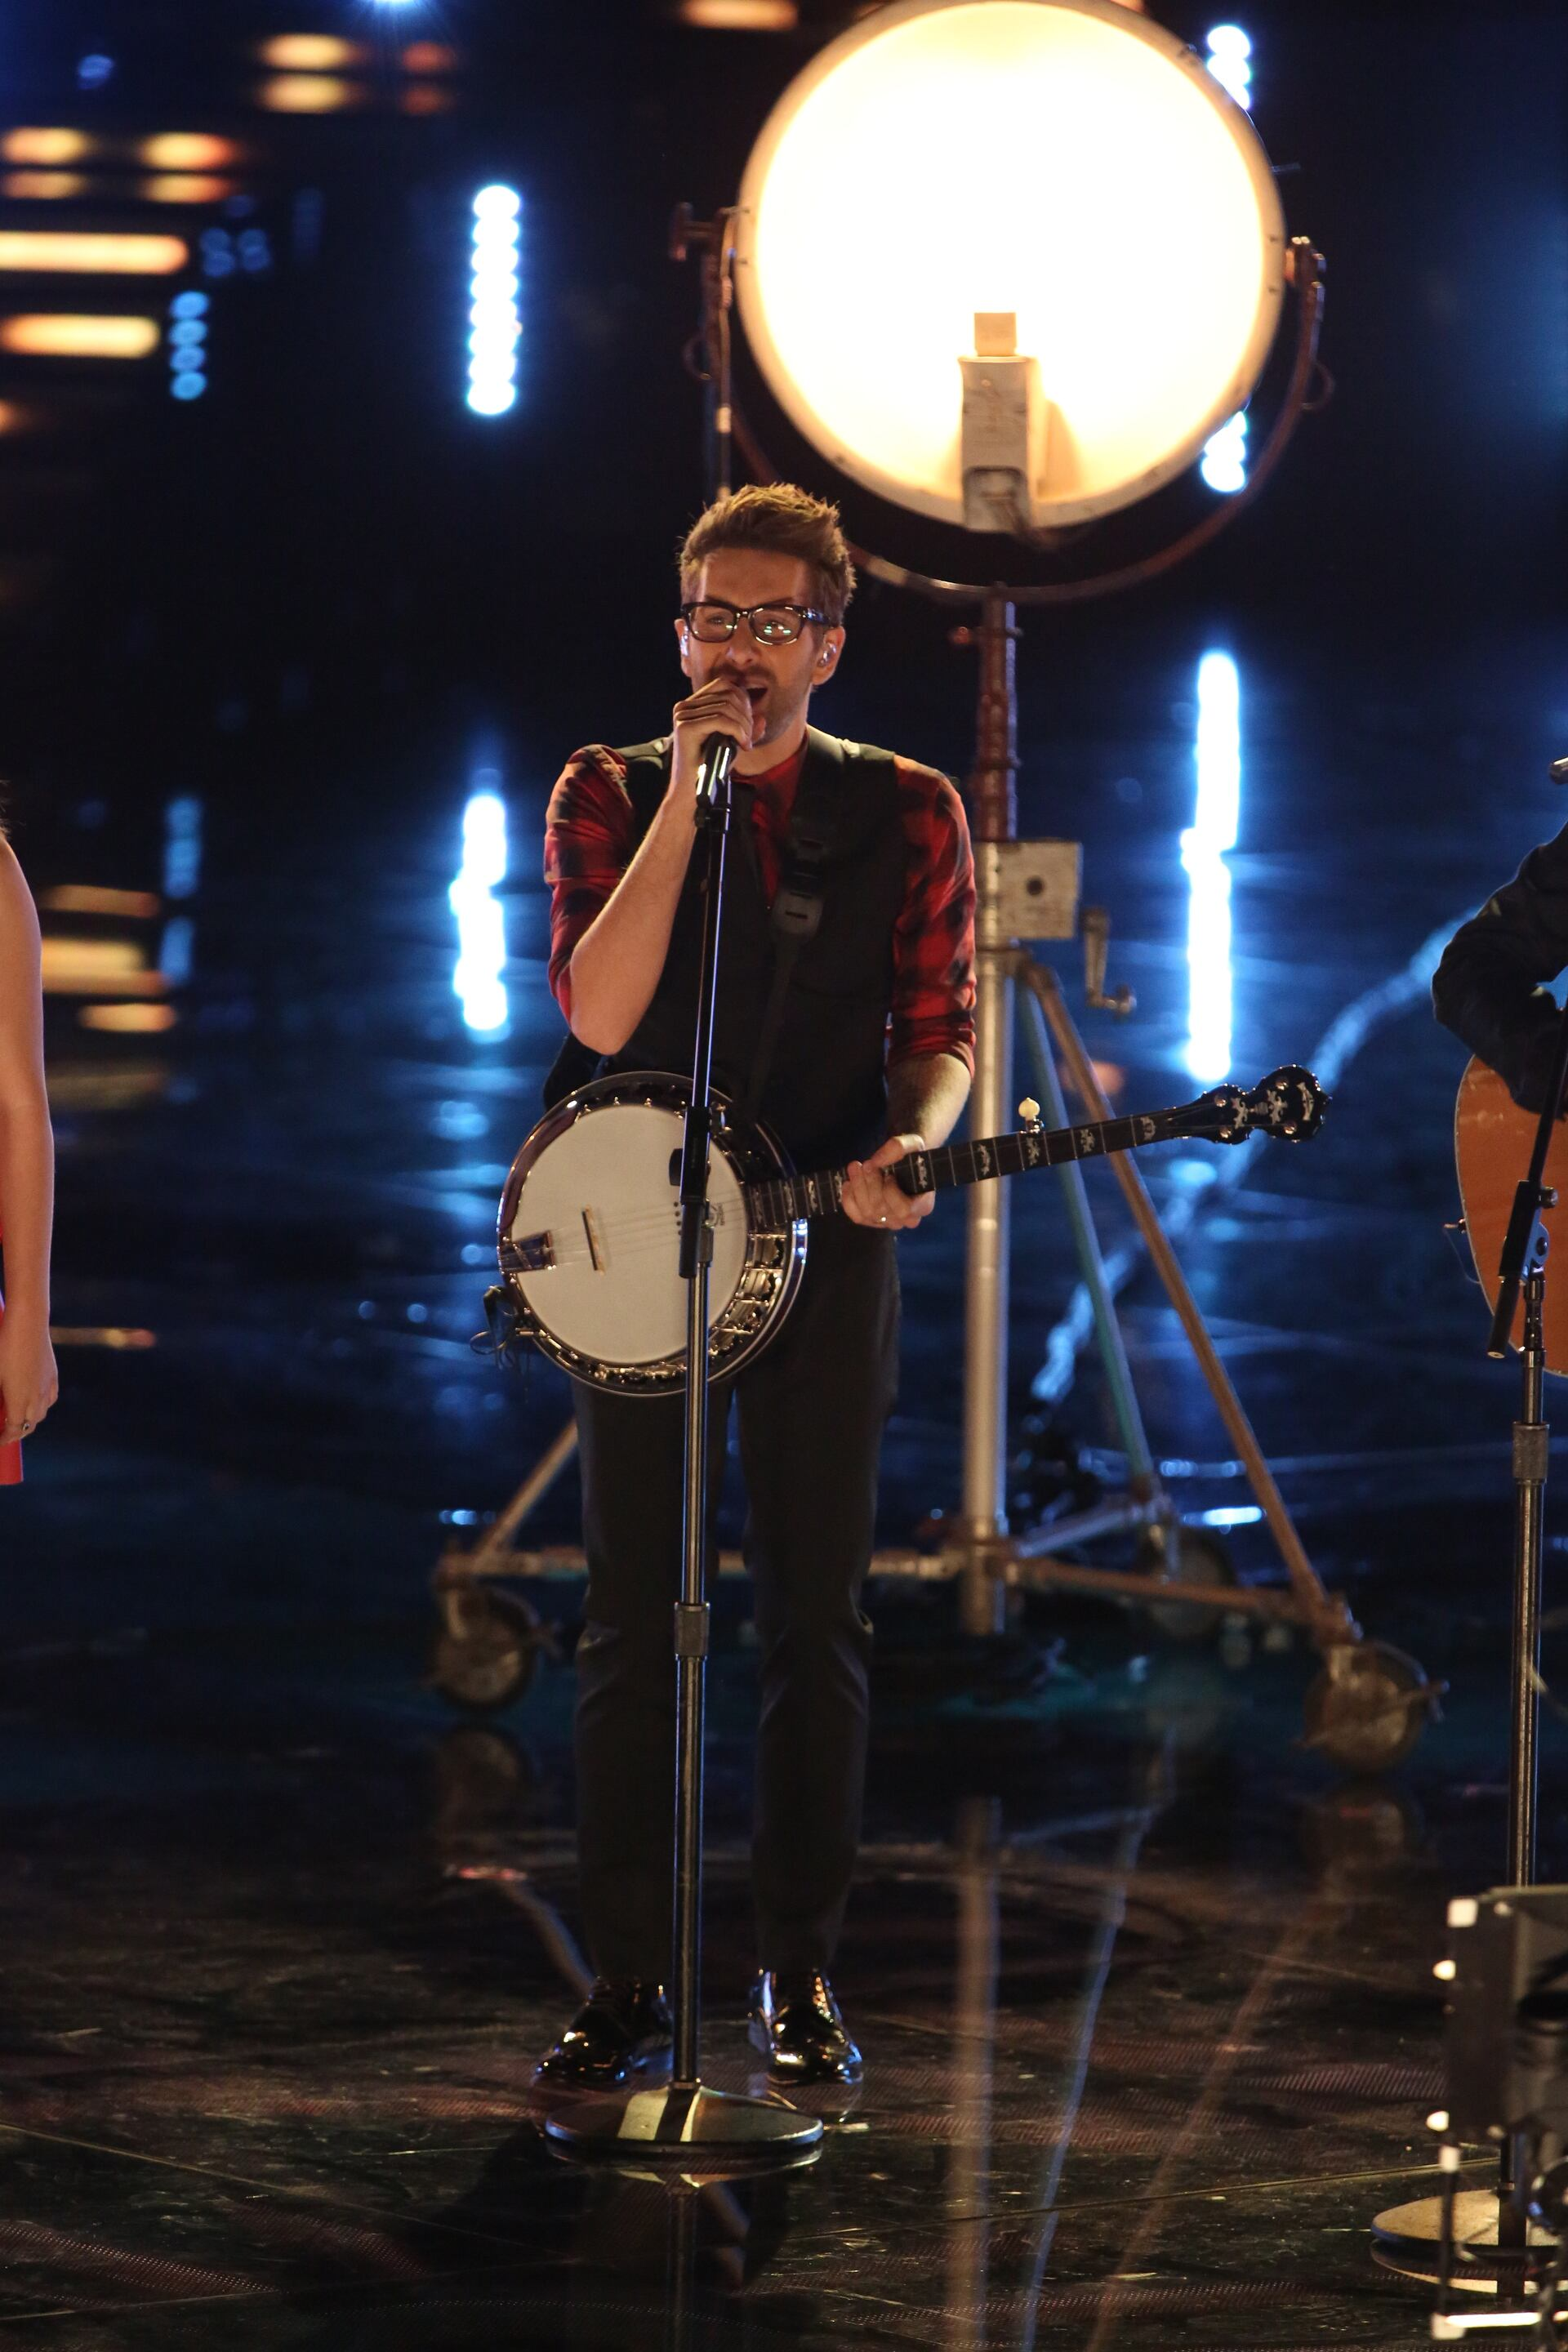 """Returning to the stage for the results the next night, Will brought back some fellow contestants to sing the folk-country hit """"Wagon Wheel,"""" and joined the rest of the Top 20 for """"Tonight Is the Night."""""""